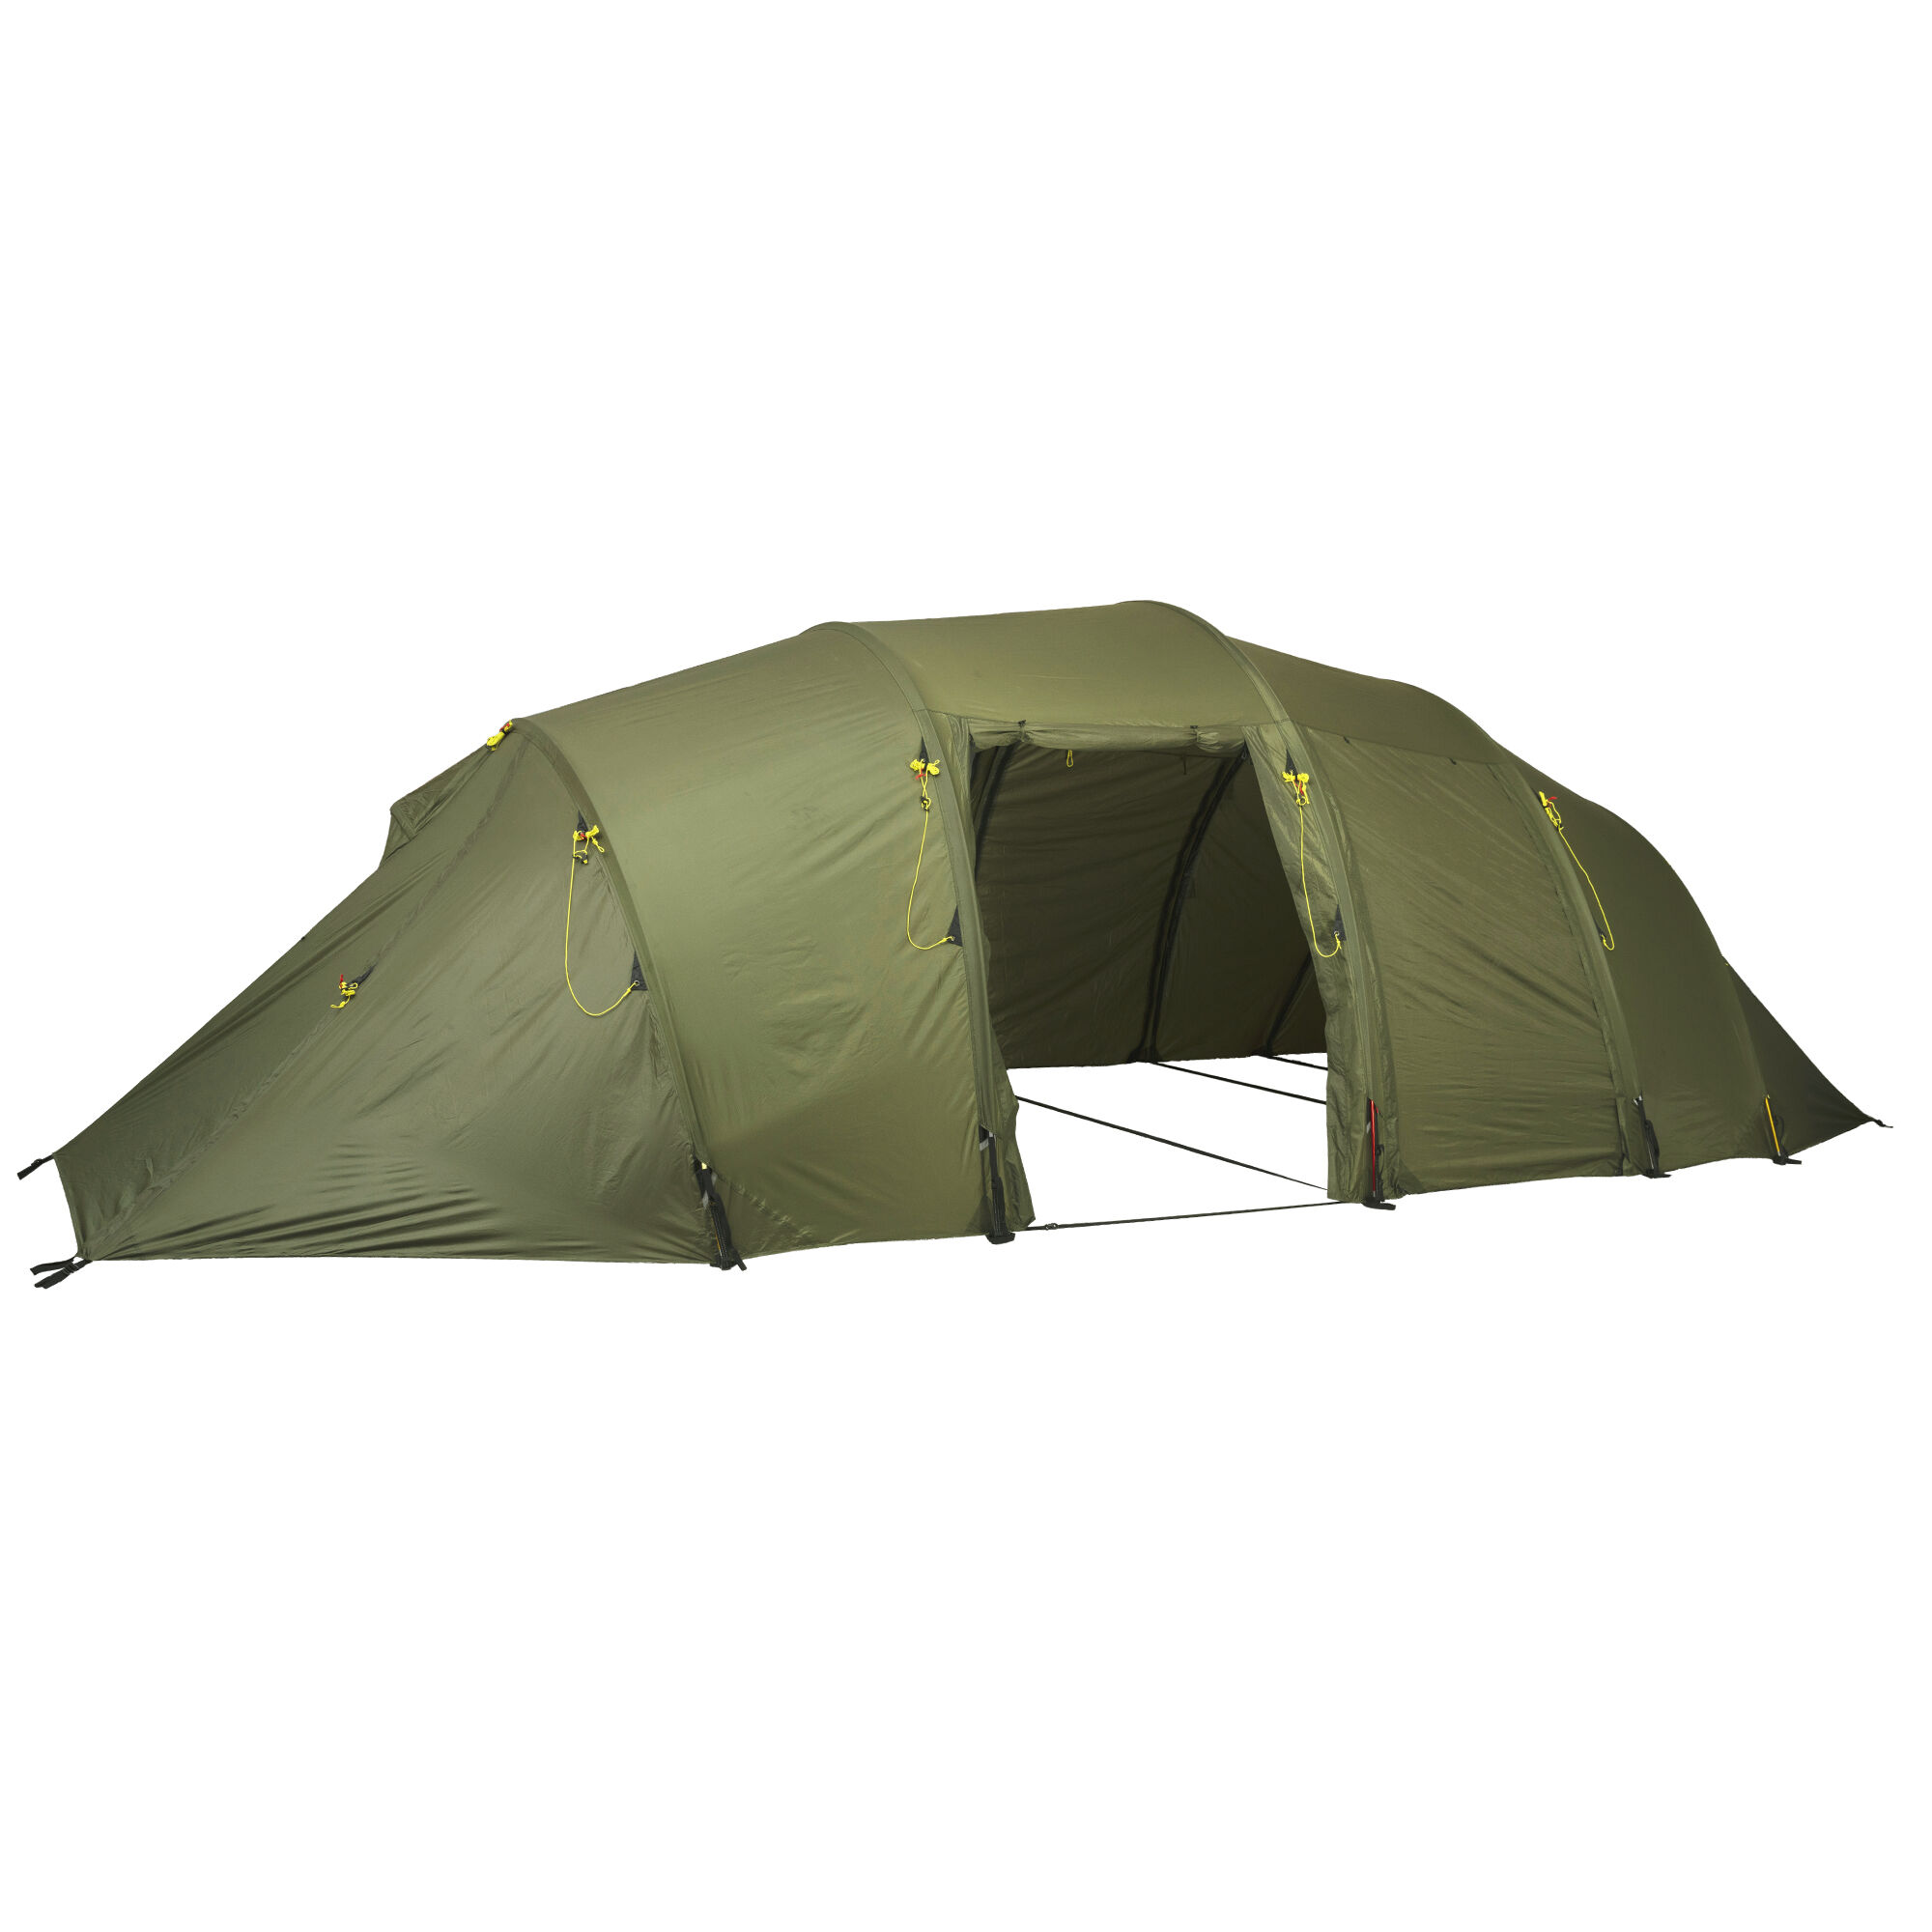 Valhall Outer Tent   Helsport